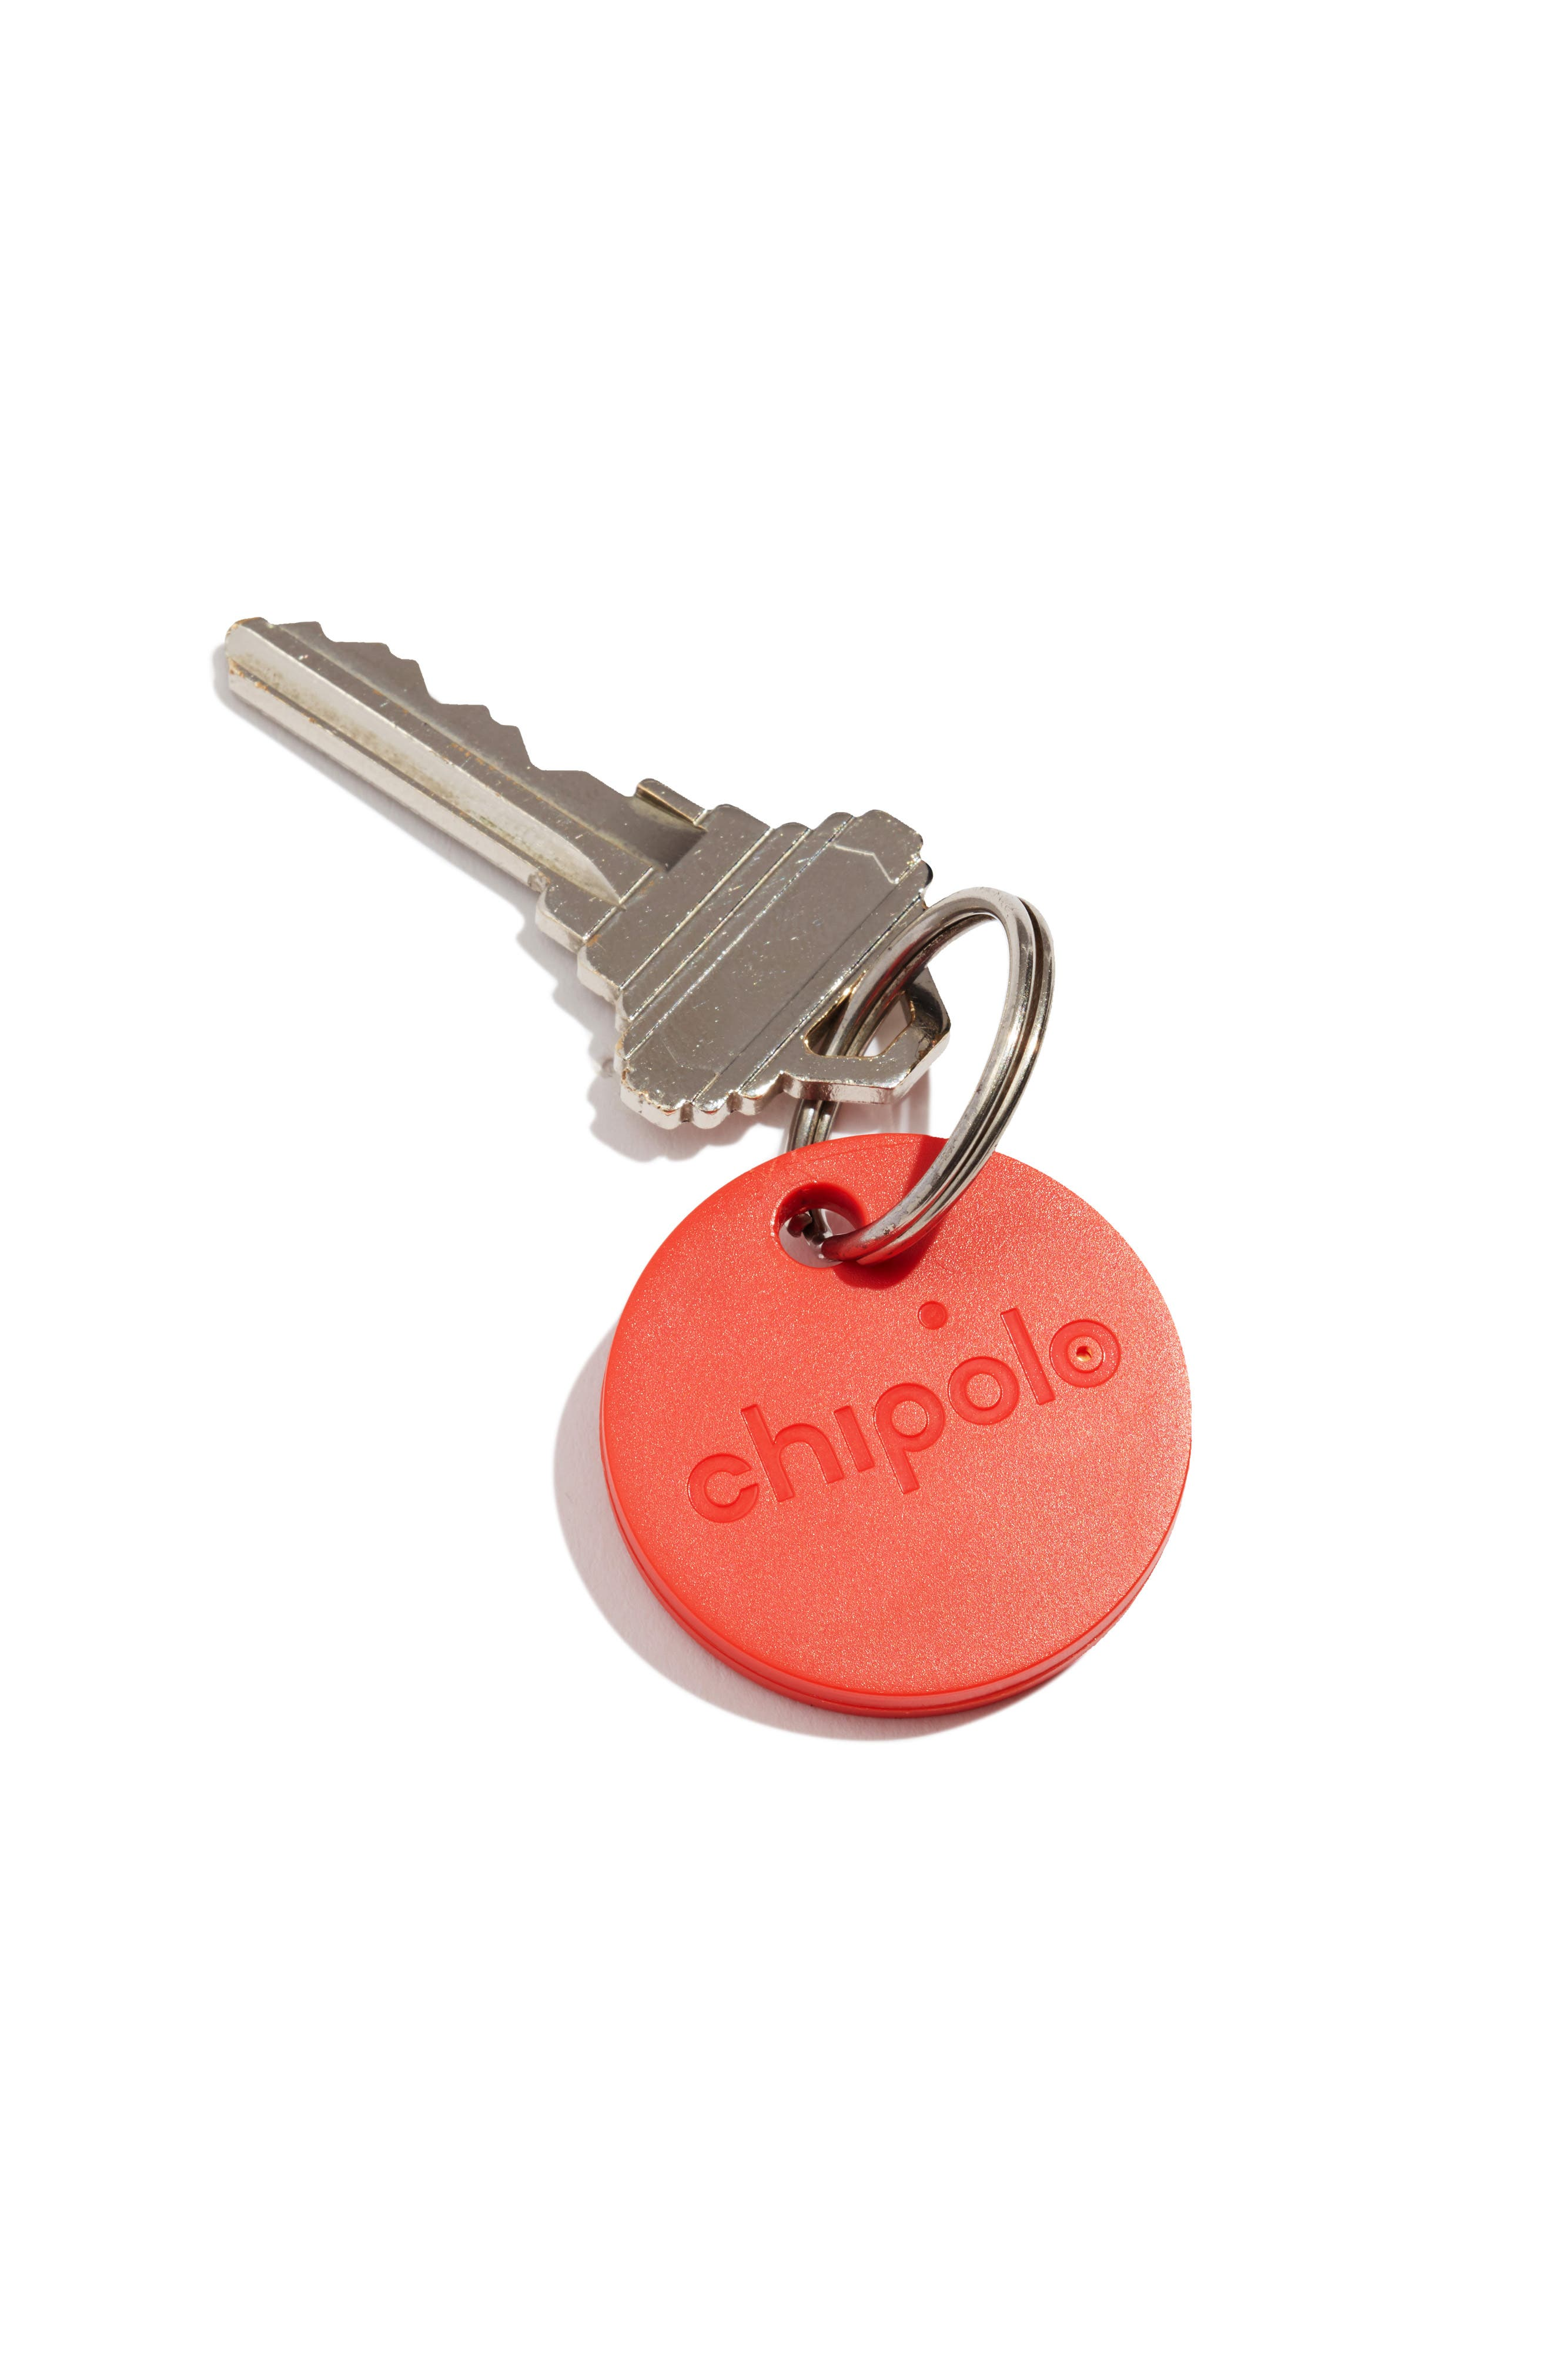 Soda Says x Chipolo Classic 2.0 Bluetooth Tracker,                             Alternate thumbnail 2, color,                             RED